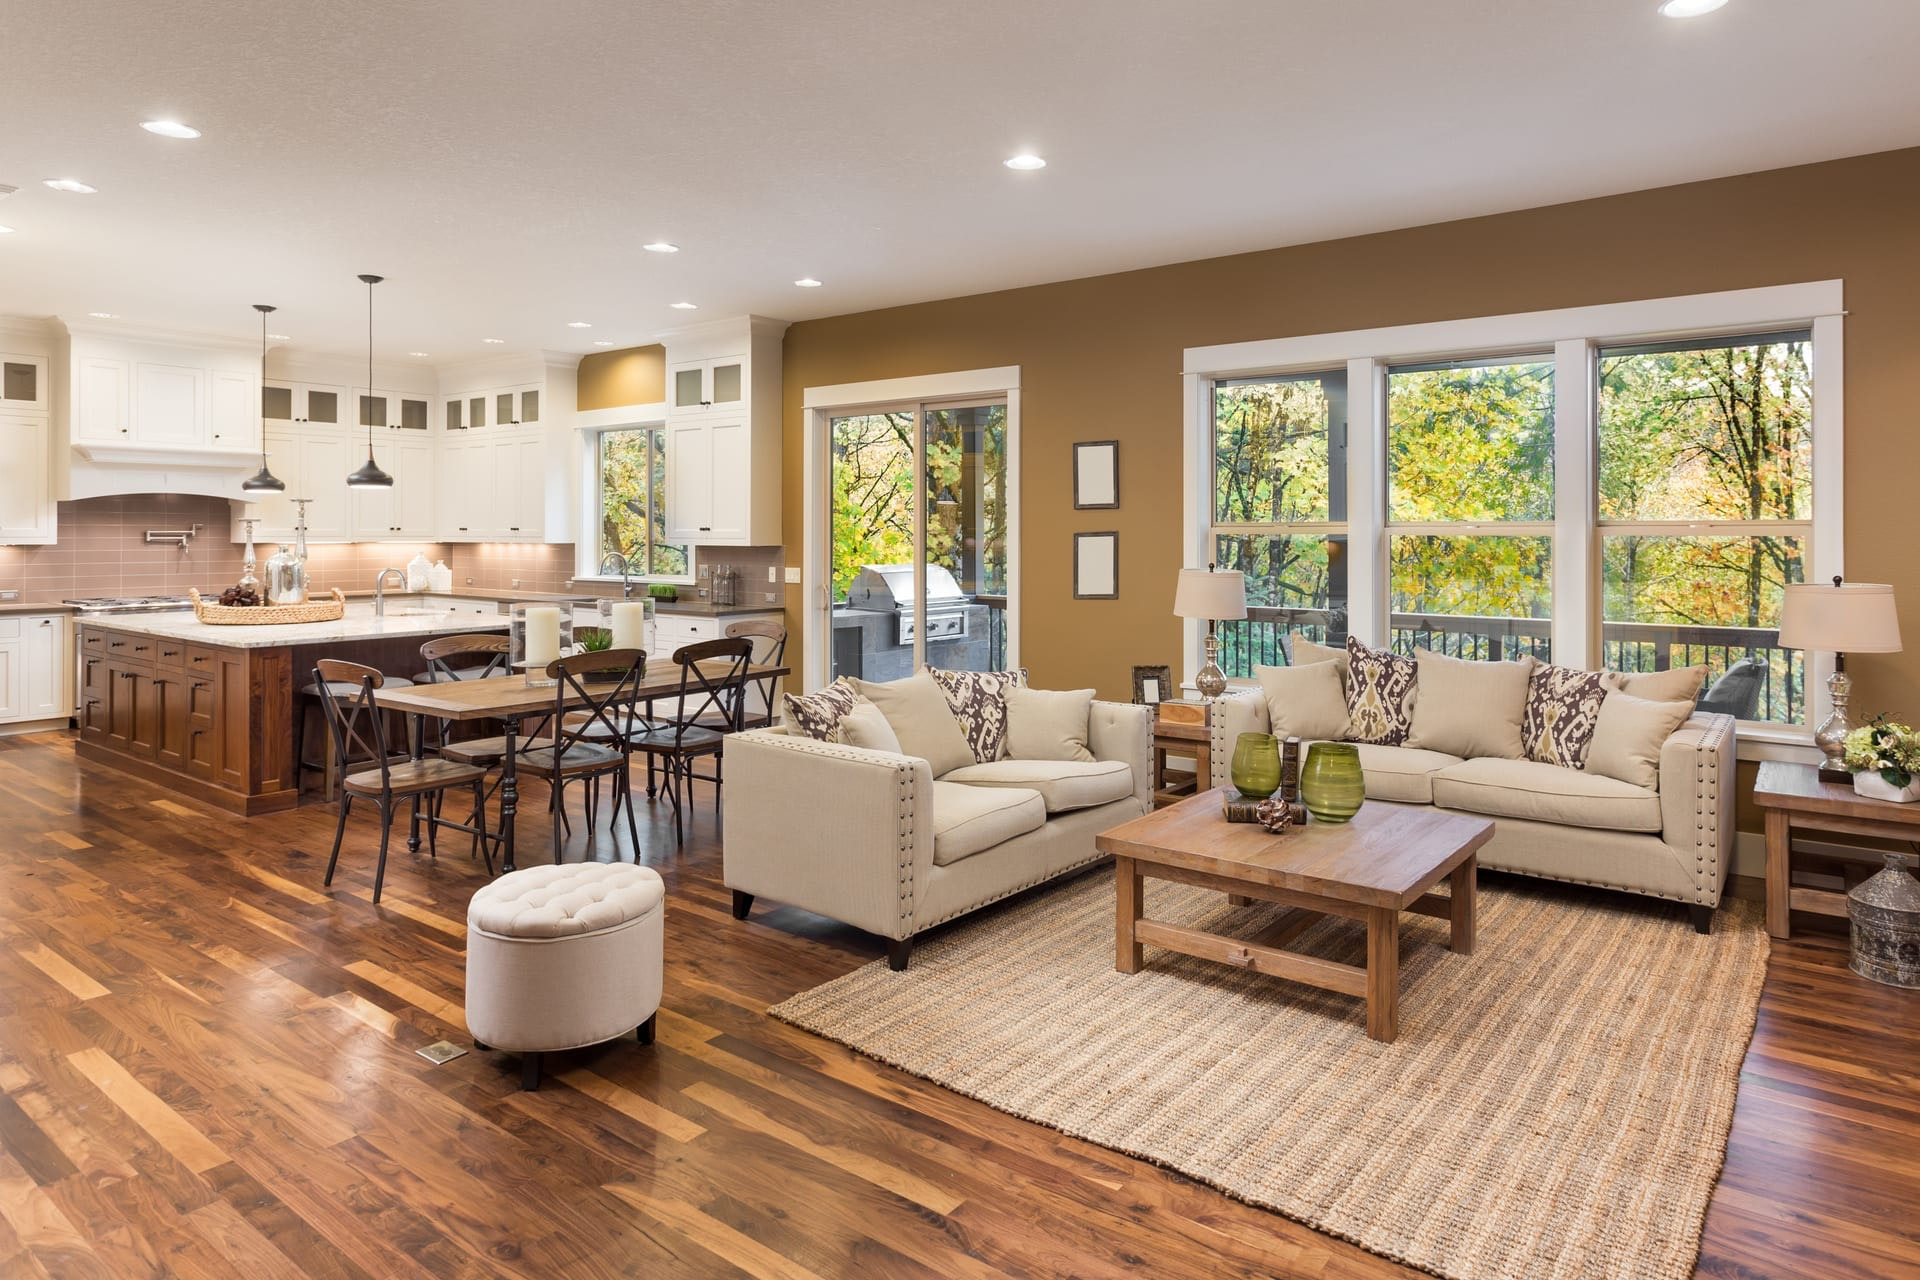 How Much Do Hardwood Floors Increase Home Value Clever Real Estate Blog